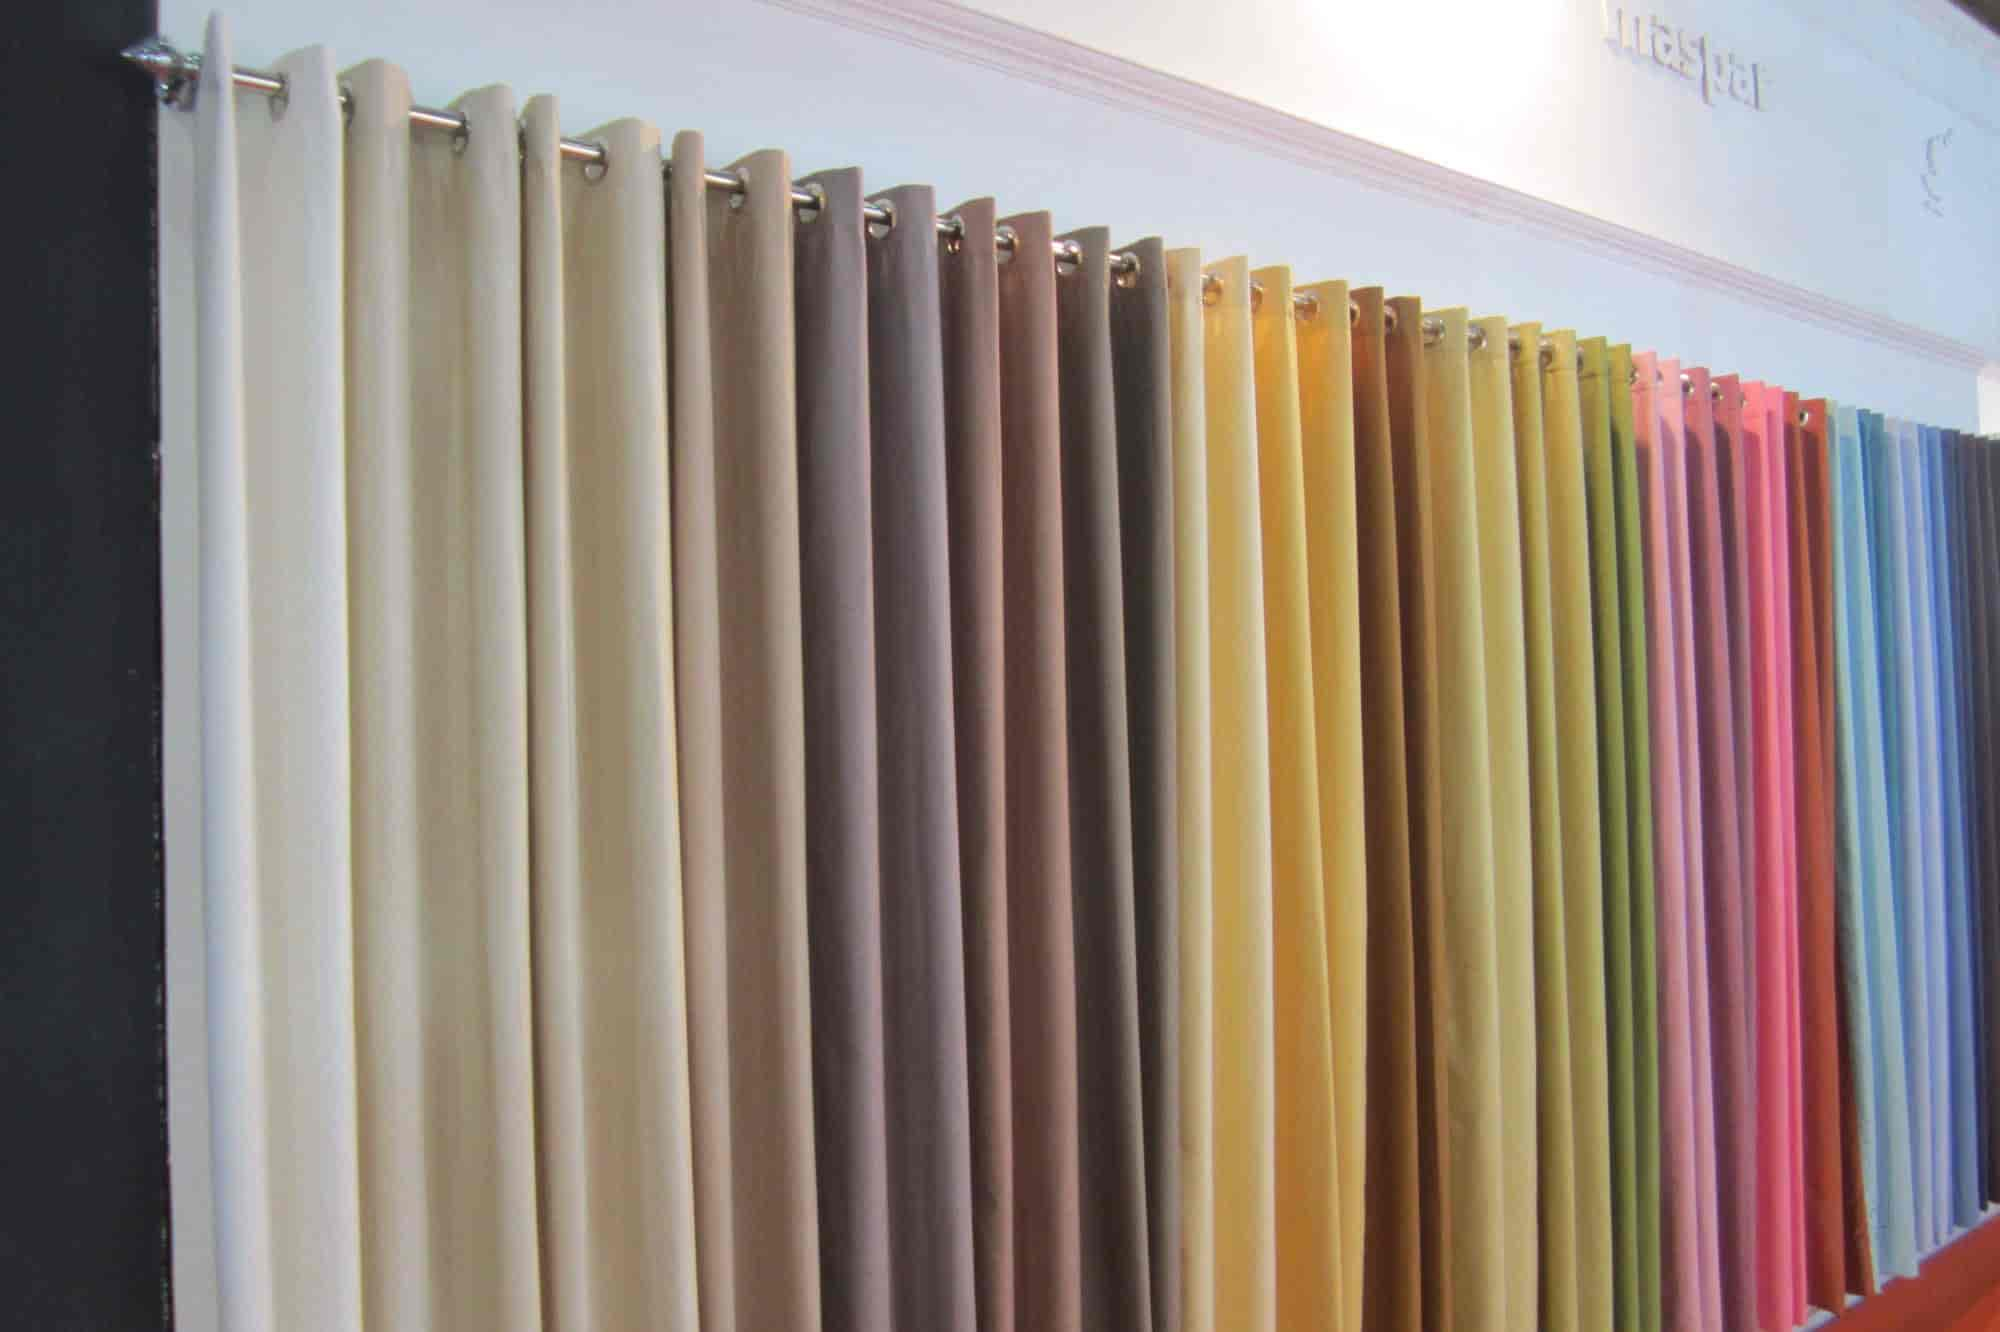 curtains dealers justdial station drapes police and decors modern in curtain nungambakkam chennai bzdet opposite